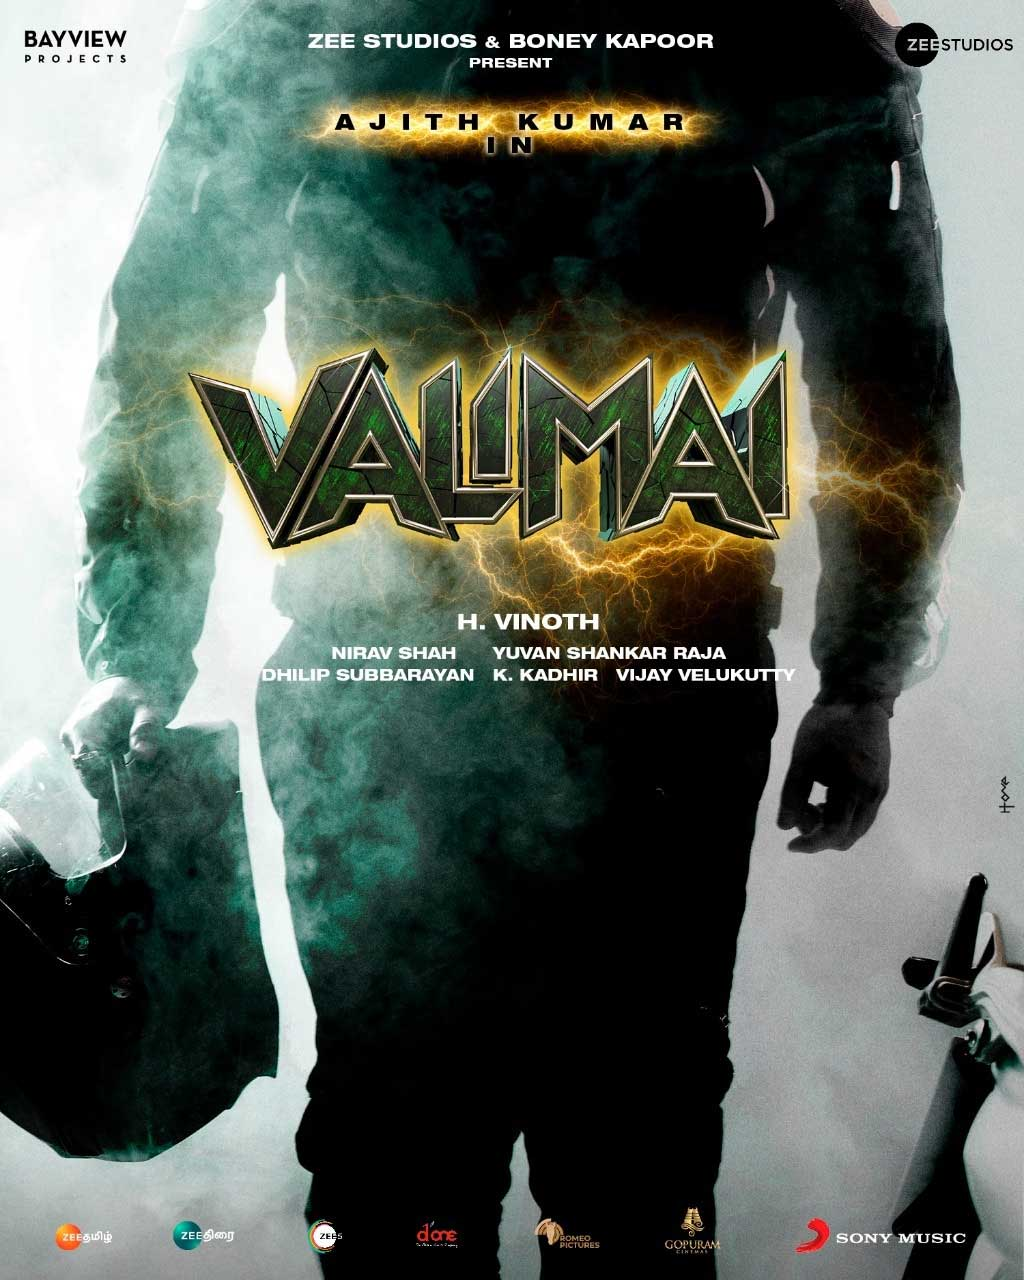 Valimai Movie Poster: Most Trending Movie News in 2021